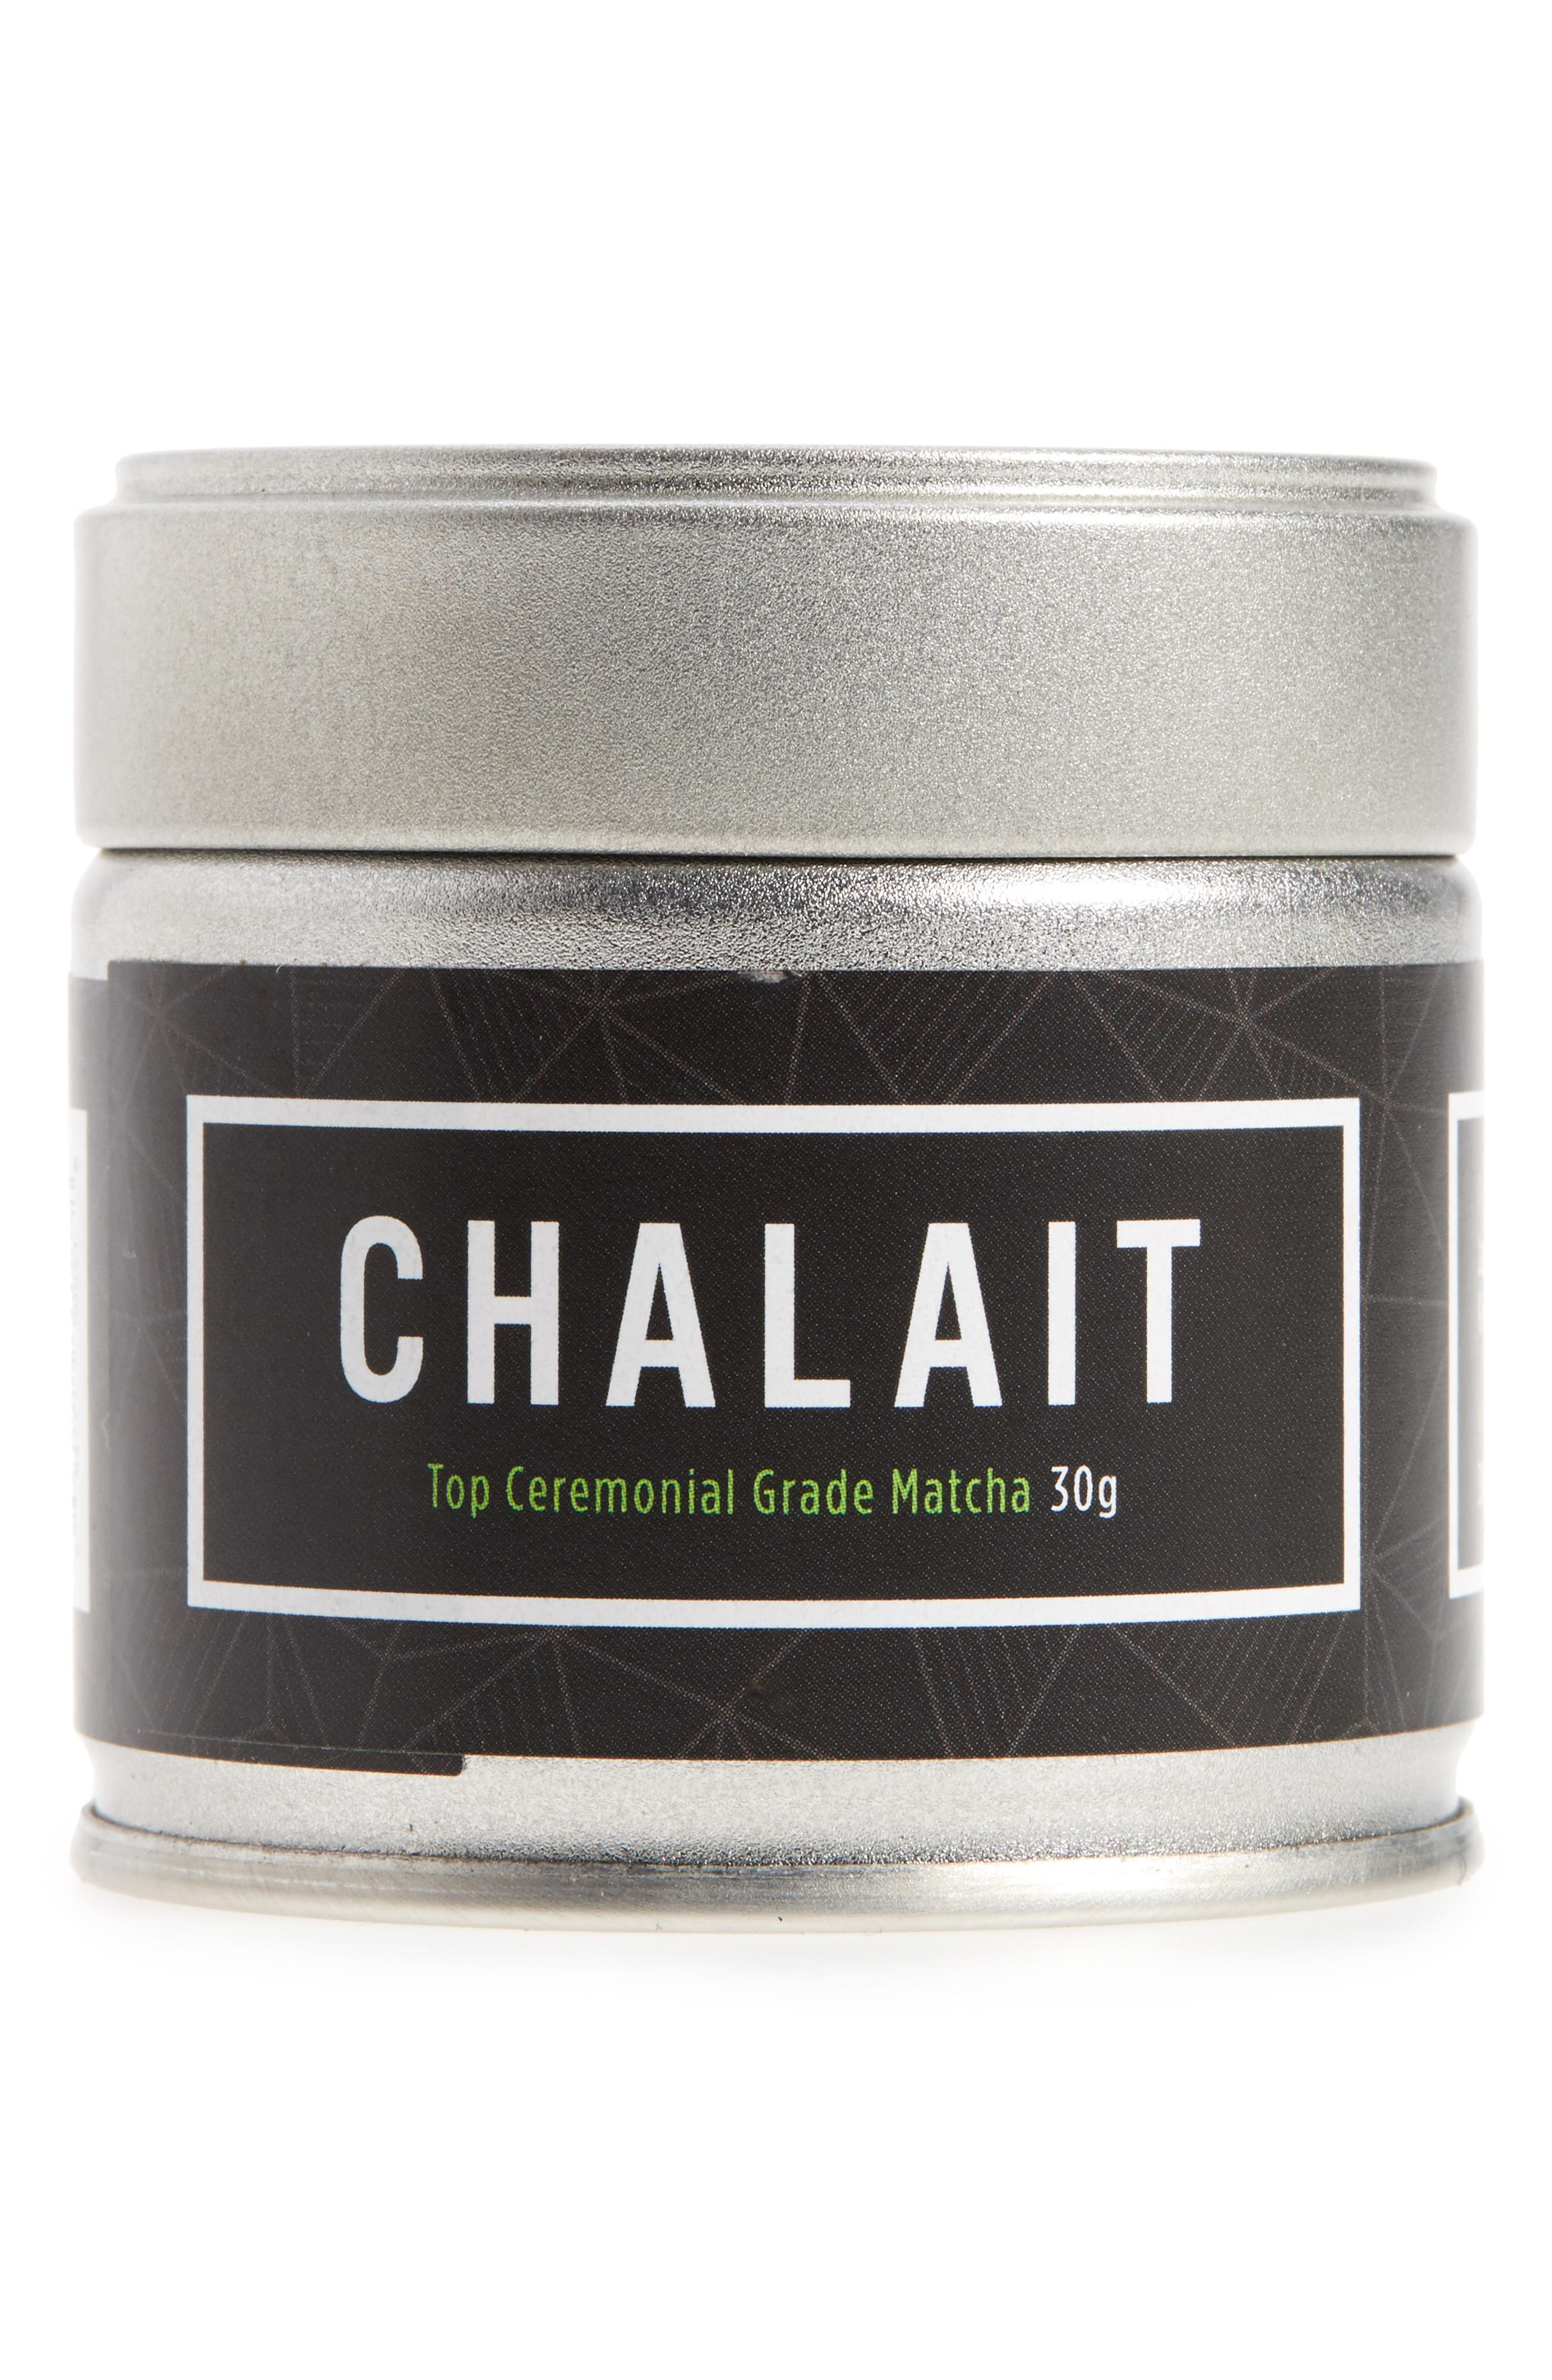 Don't ever settle for less than top grade matcha again. Chalait Top Ceremonial Grade Matcha - $45. More info at Nordstrom.com/POP (Image: Nordstrom)